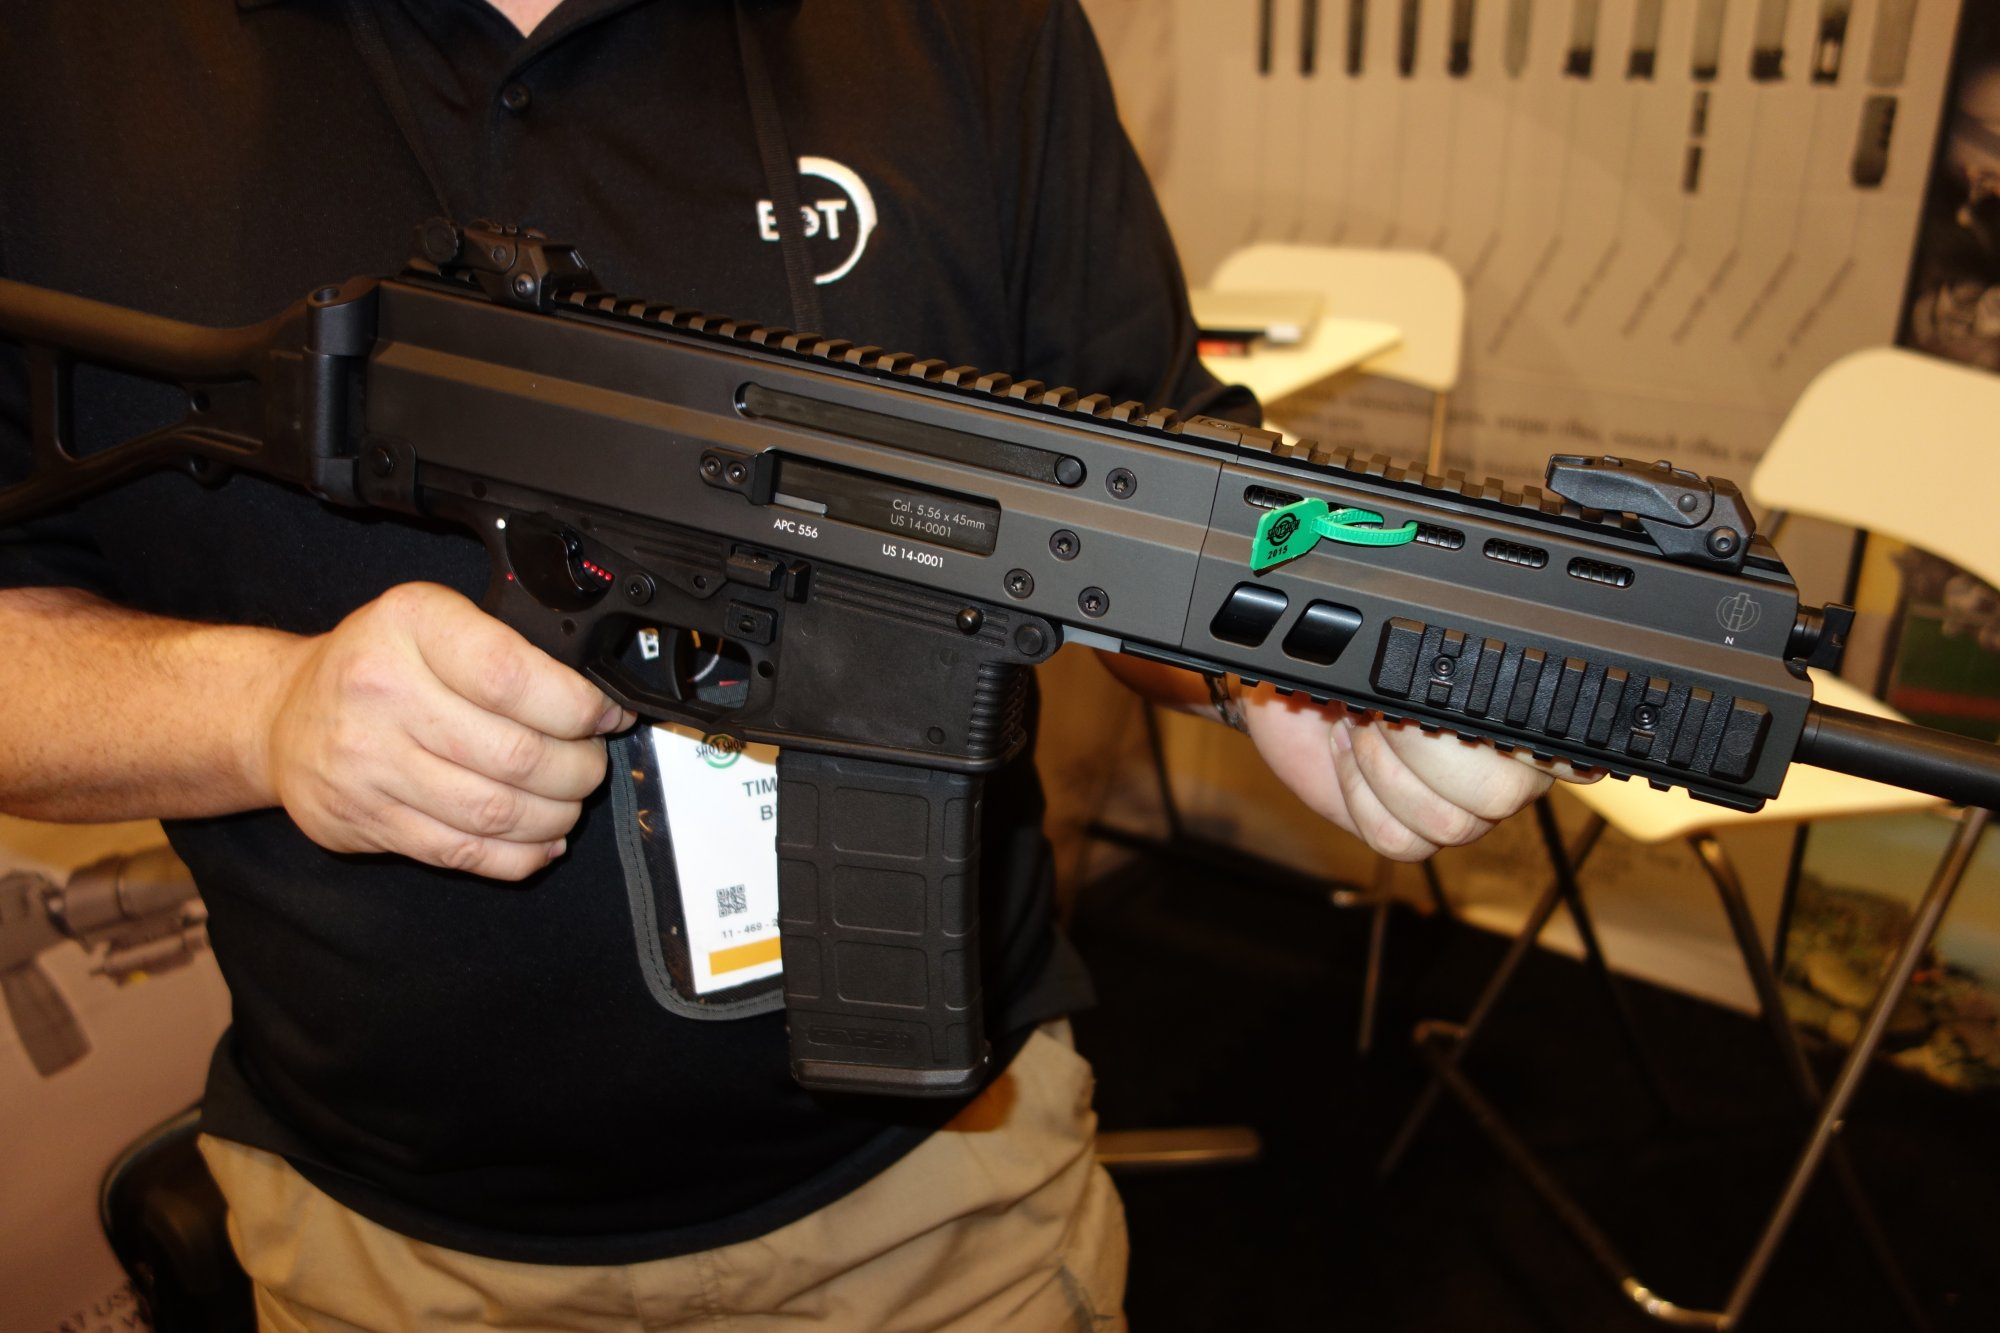 Brugger  Thomet BT APC556 5.56mm NATO Select Fire Assault Rifle Carbine SBR and Semi Auto Tactical Rifle Carbine SHOT Show 2015 David Crane DefenseReview.com DR 2 Brugger & Thomet B&T AP556 Select Fire and Semi Auto Only Tactical Rifle/Carbine/SBRs: More Gas Piston/Op Rod Rifle Goodness with Ambi Controls! (Video!)